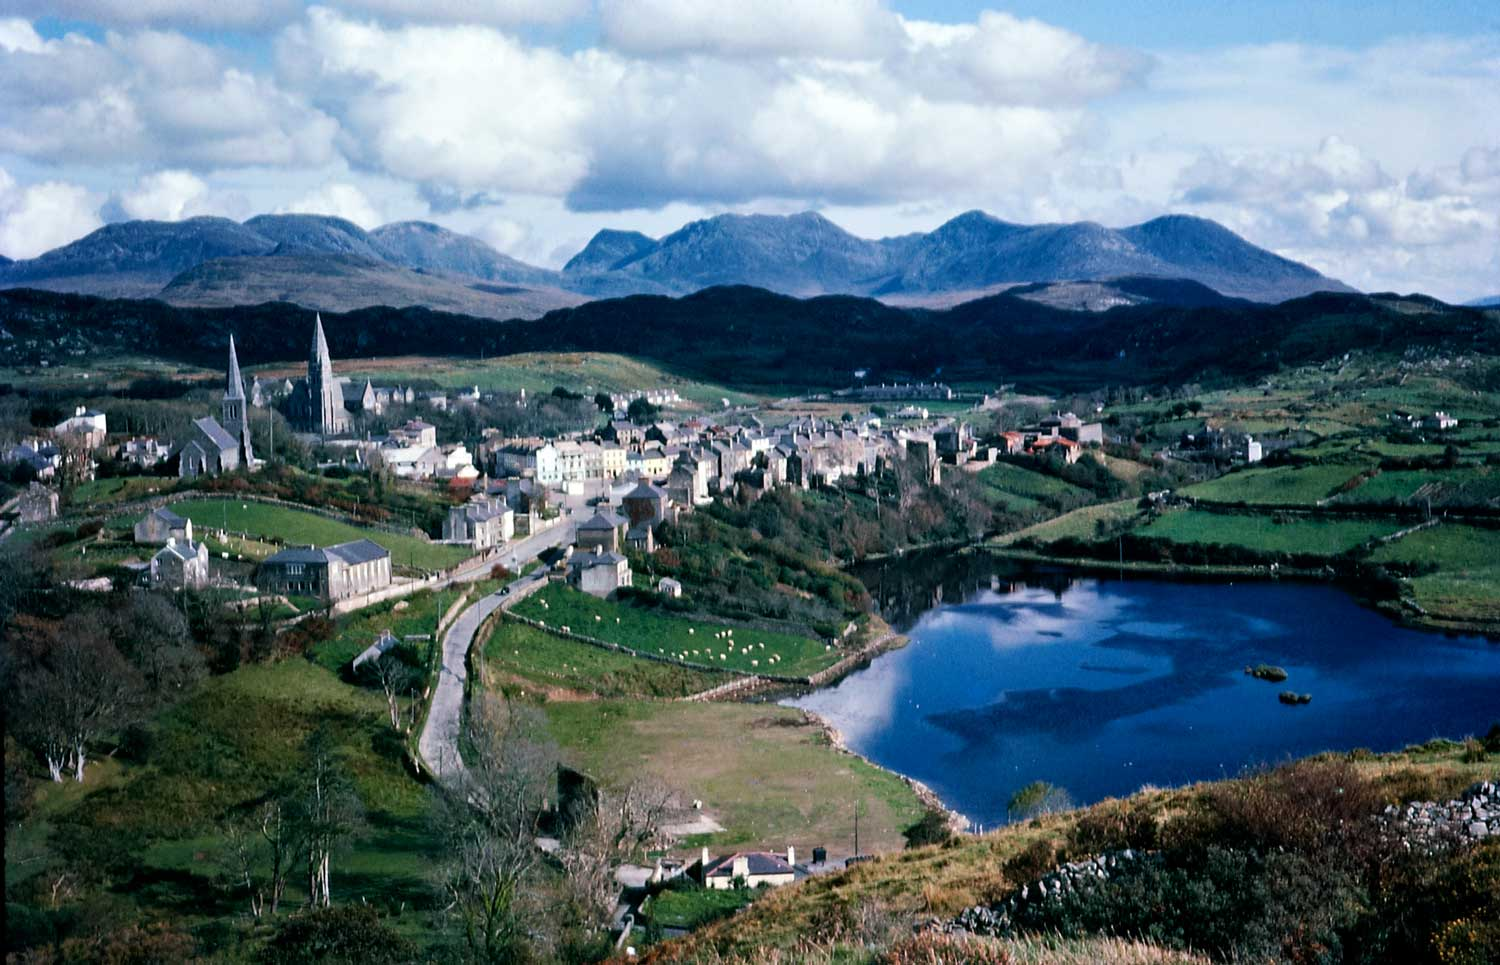 1960: Clifden, Co. Galway